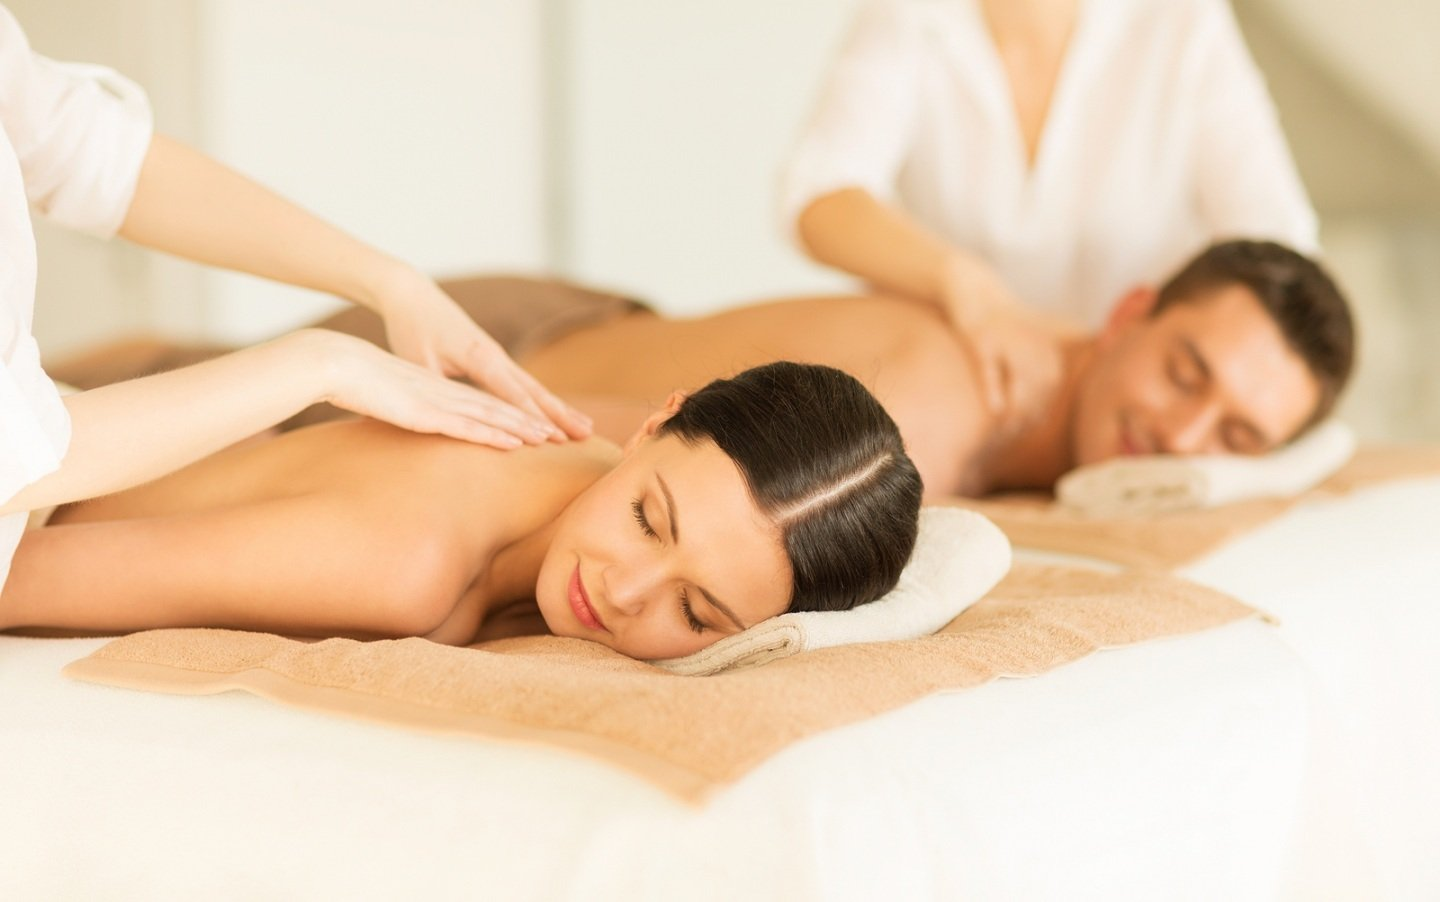 spa services - massage couple wallpaper 2035643508 - Spa Packages COUPLES MASSAGE